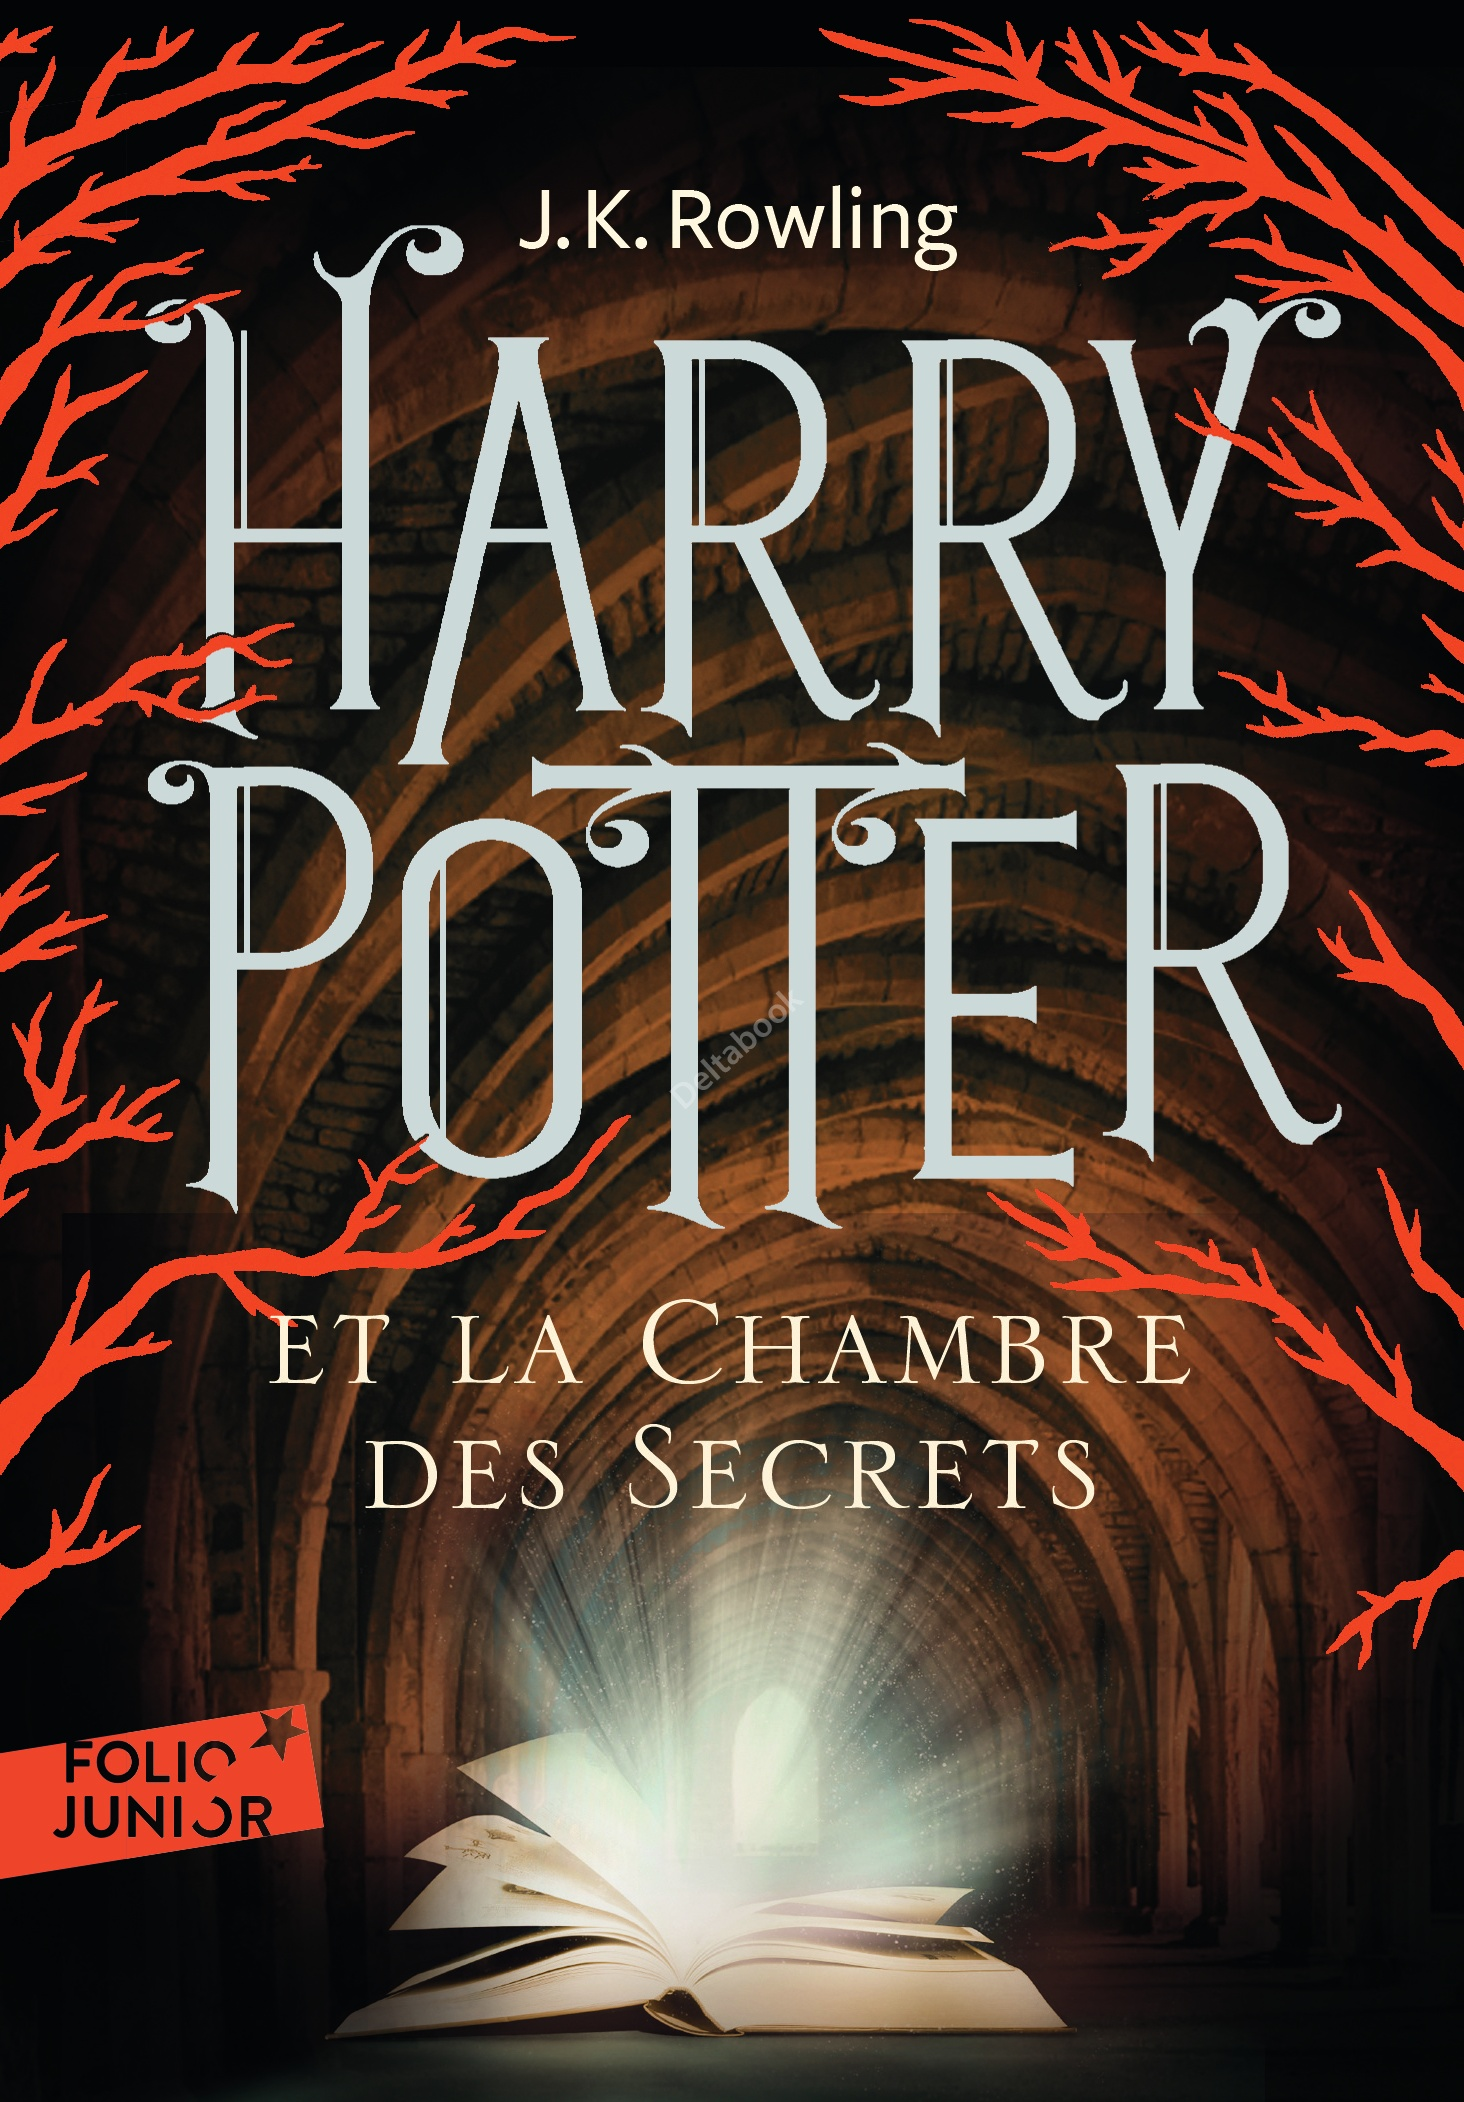 Harry potter et la chambre des secrets - Streaming harry potter et la chambre des secrets ...